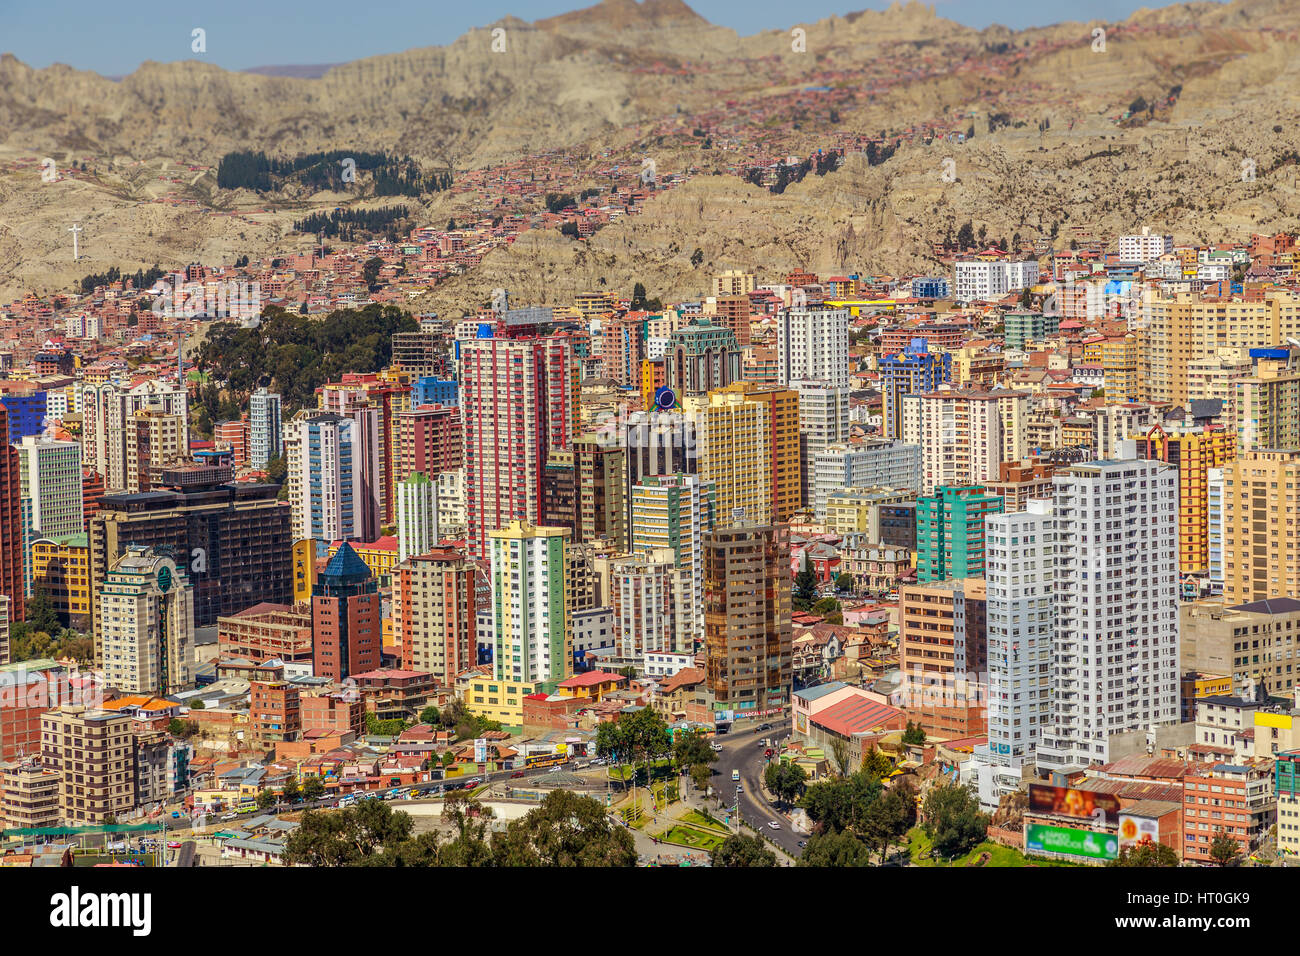 Central Bussiness district of La Paz megapolis, Bolivia, South America - Stock Image